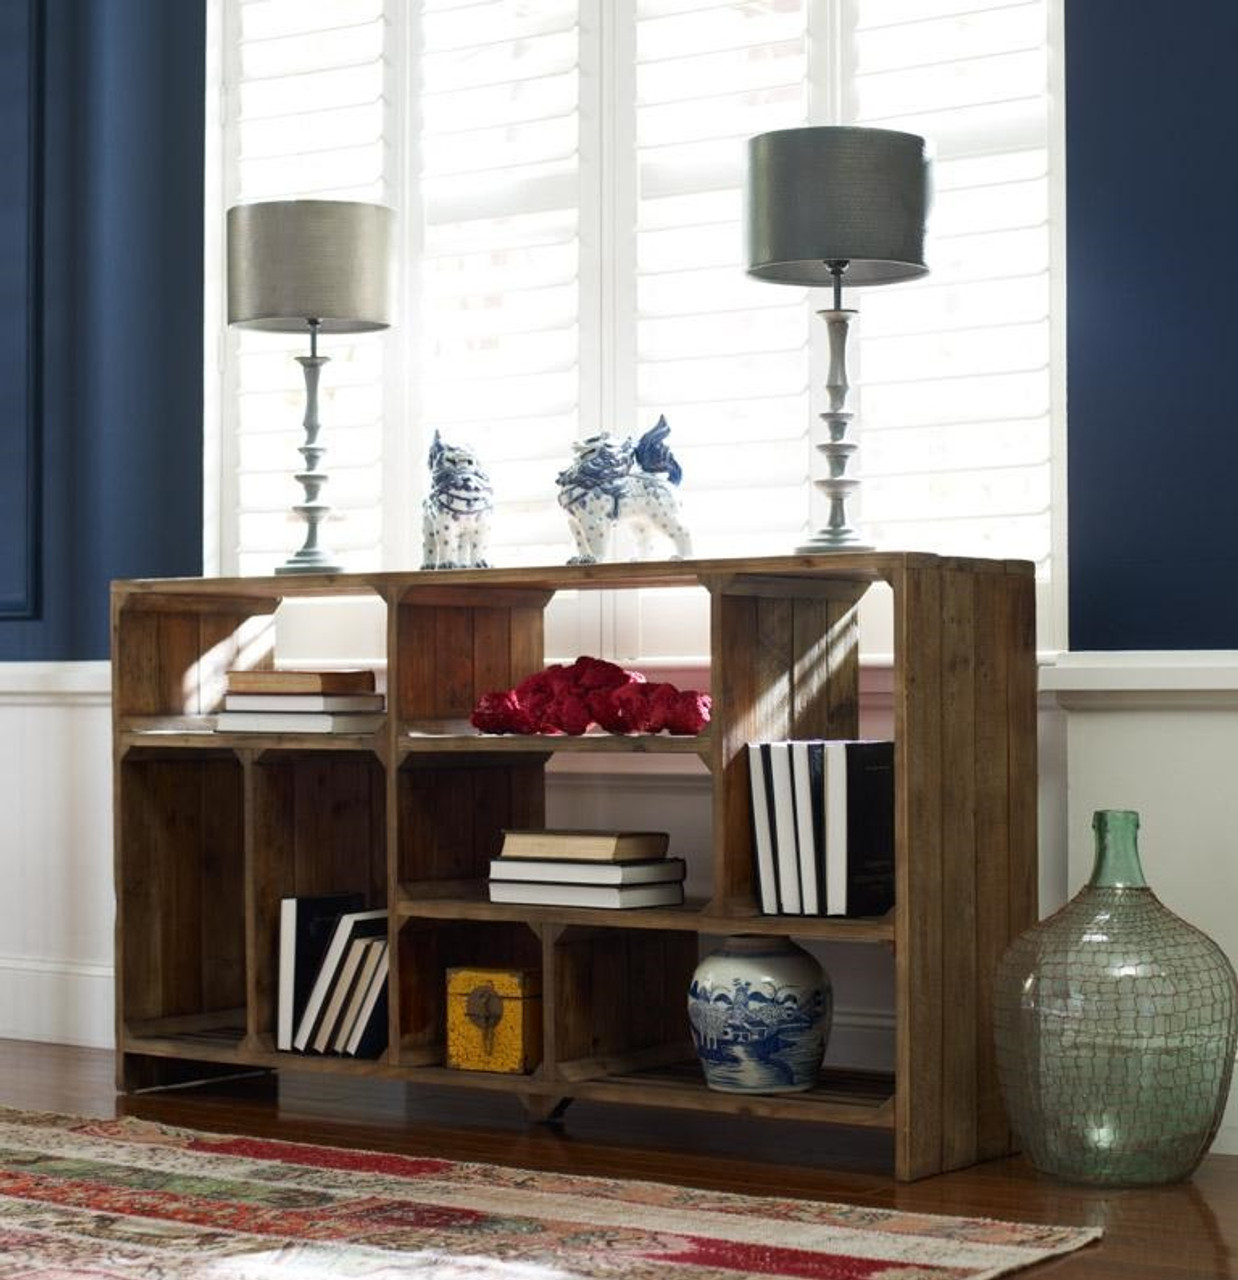 Rustic Wood Room Divider Console